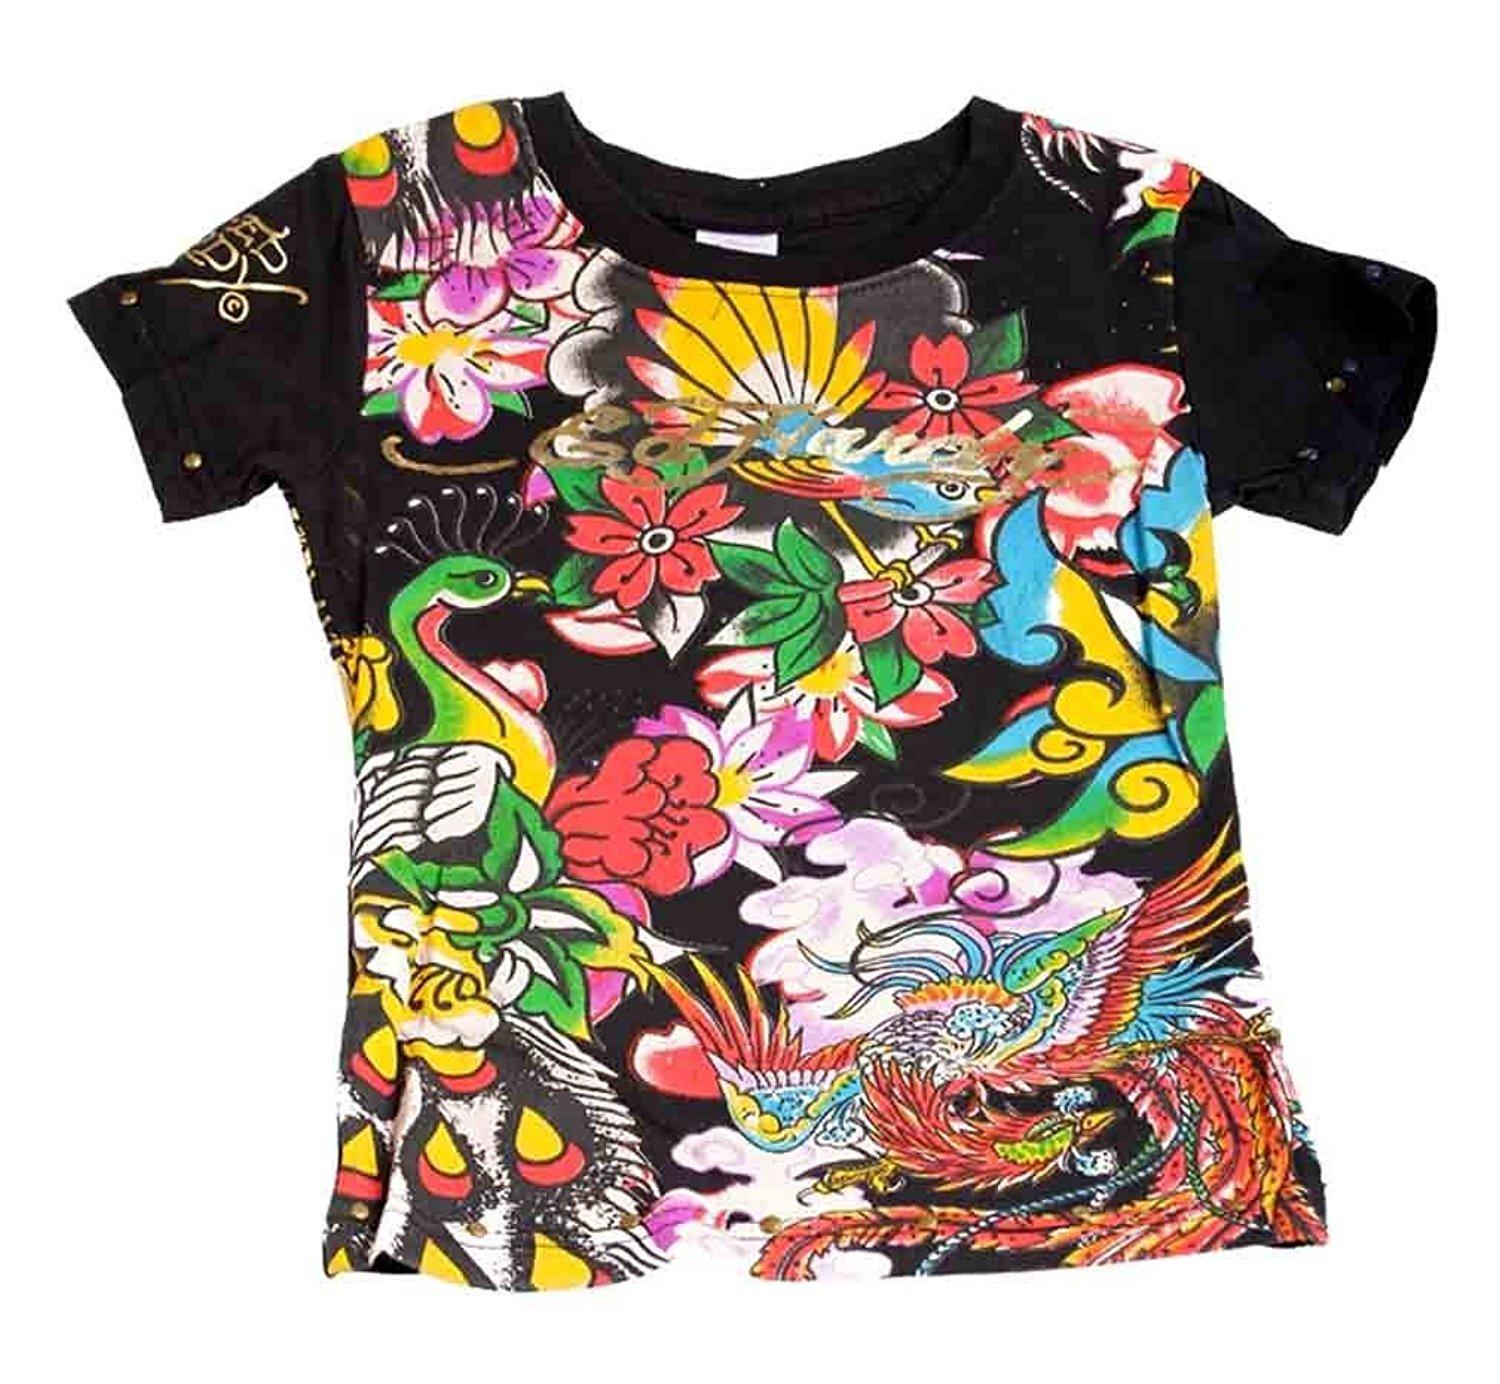 Image 0 of Ed Hardy Girls Black Tee Shirt W/birds Flowers Motif, Short Sleeve